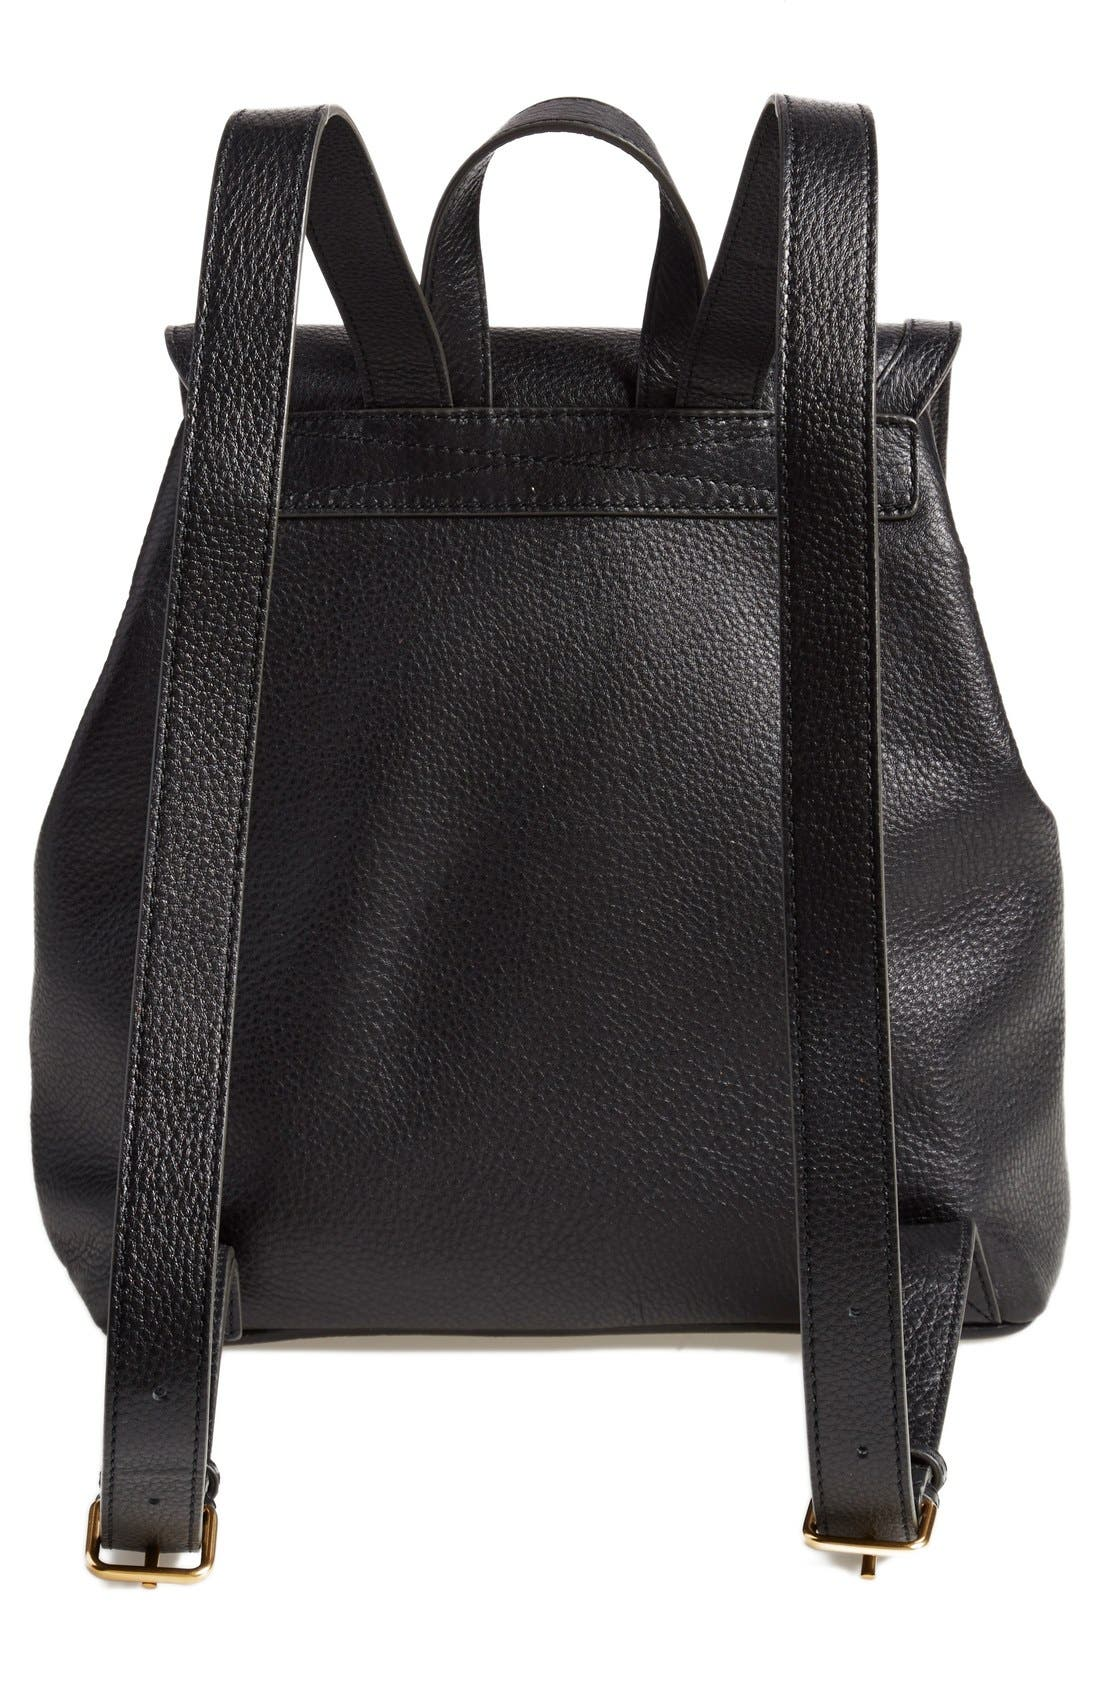 MARC BY MARC JACOBS 'Take Your Marc' Leather Backpack,                             Alternate thumbnail 3, color,                             001